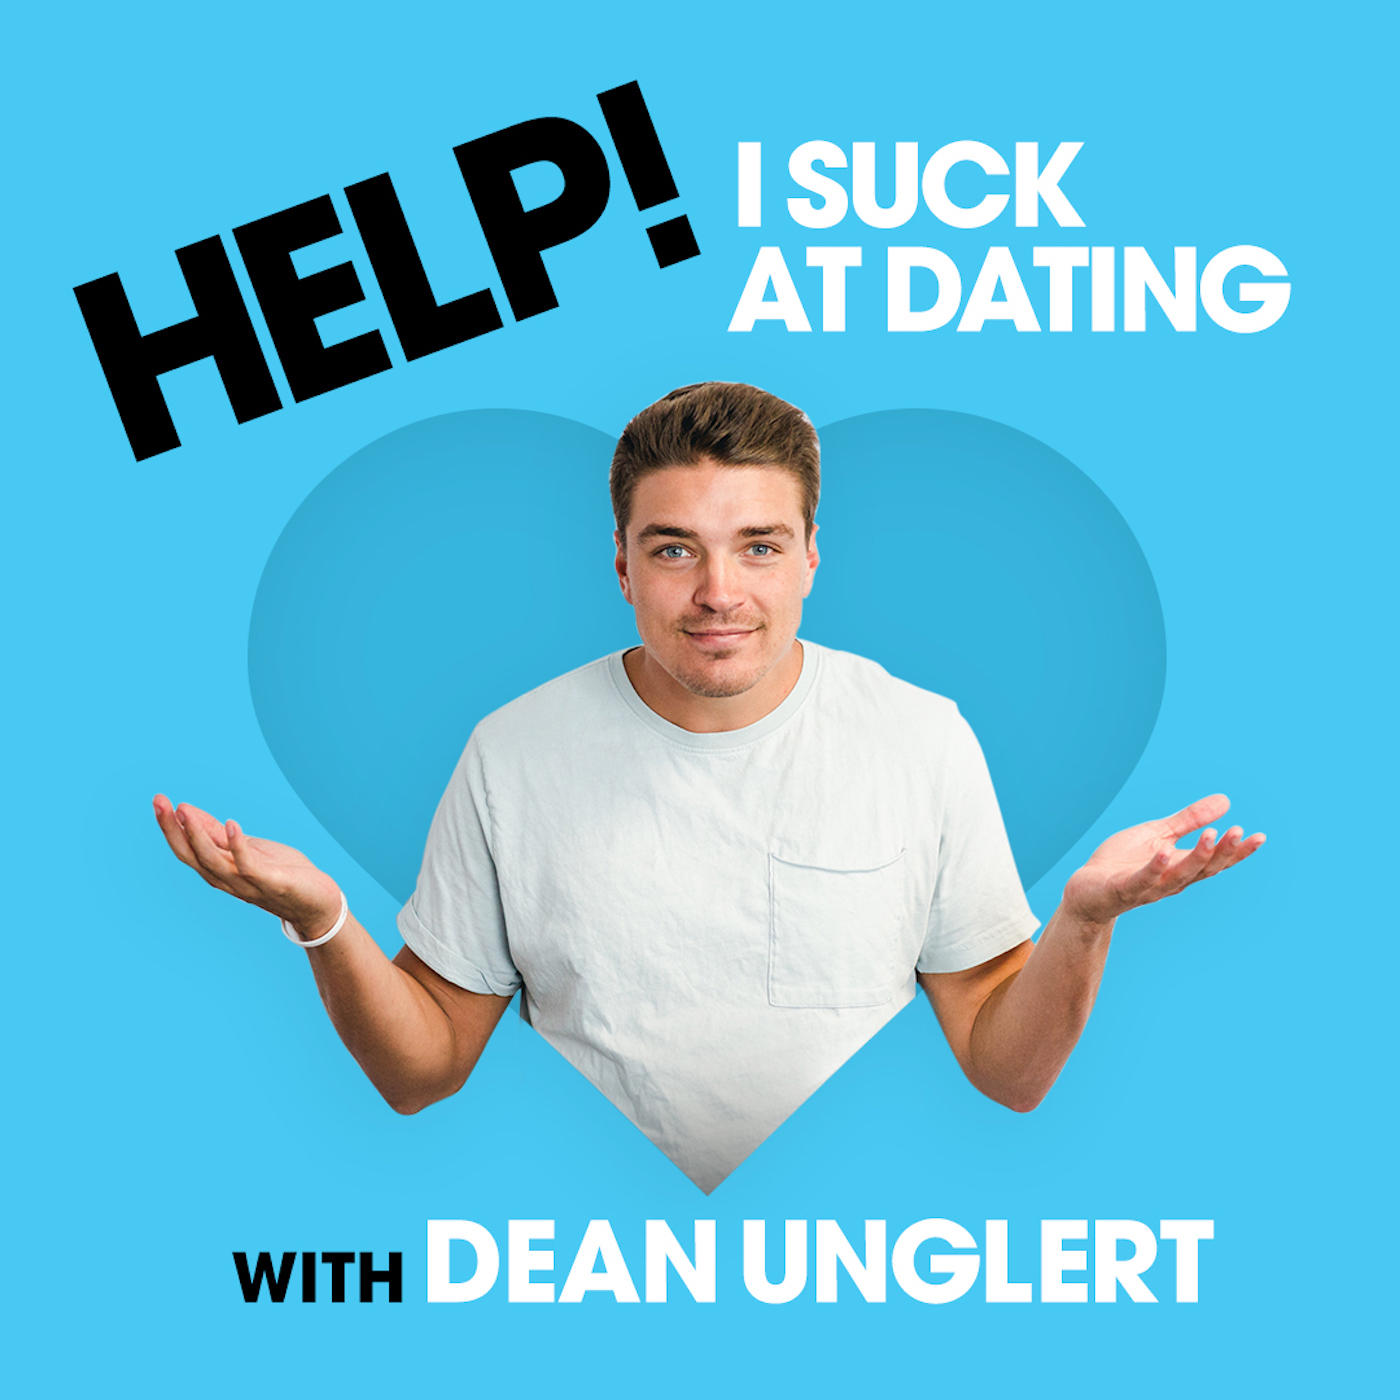 I Suck at Dating with Dean, Vanessa and Jared